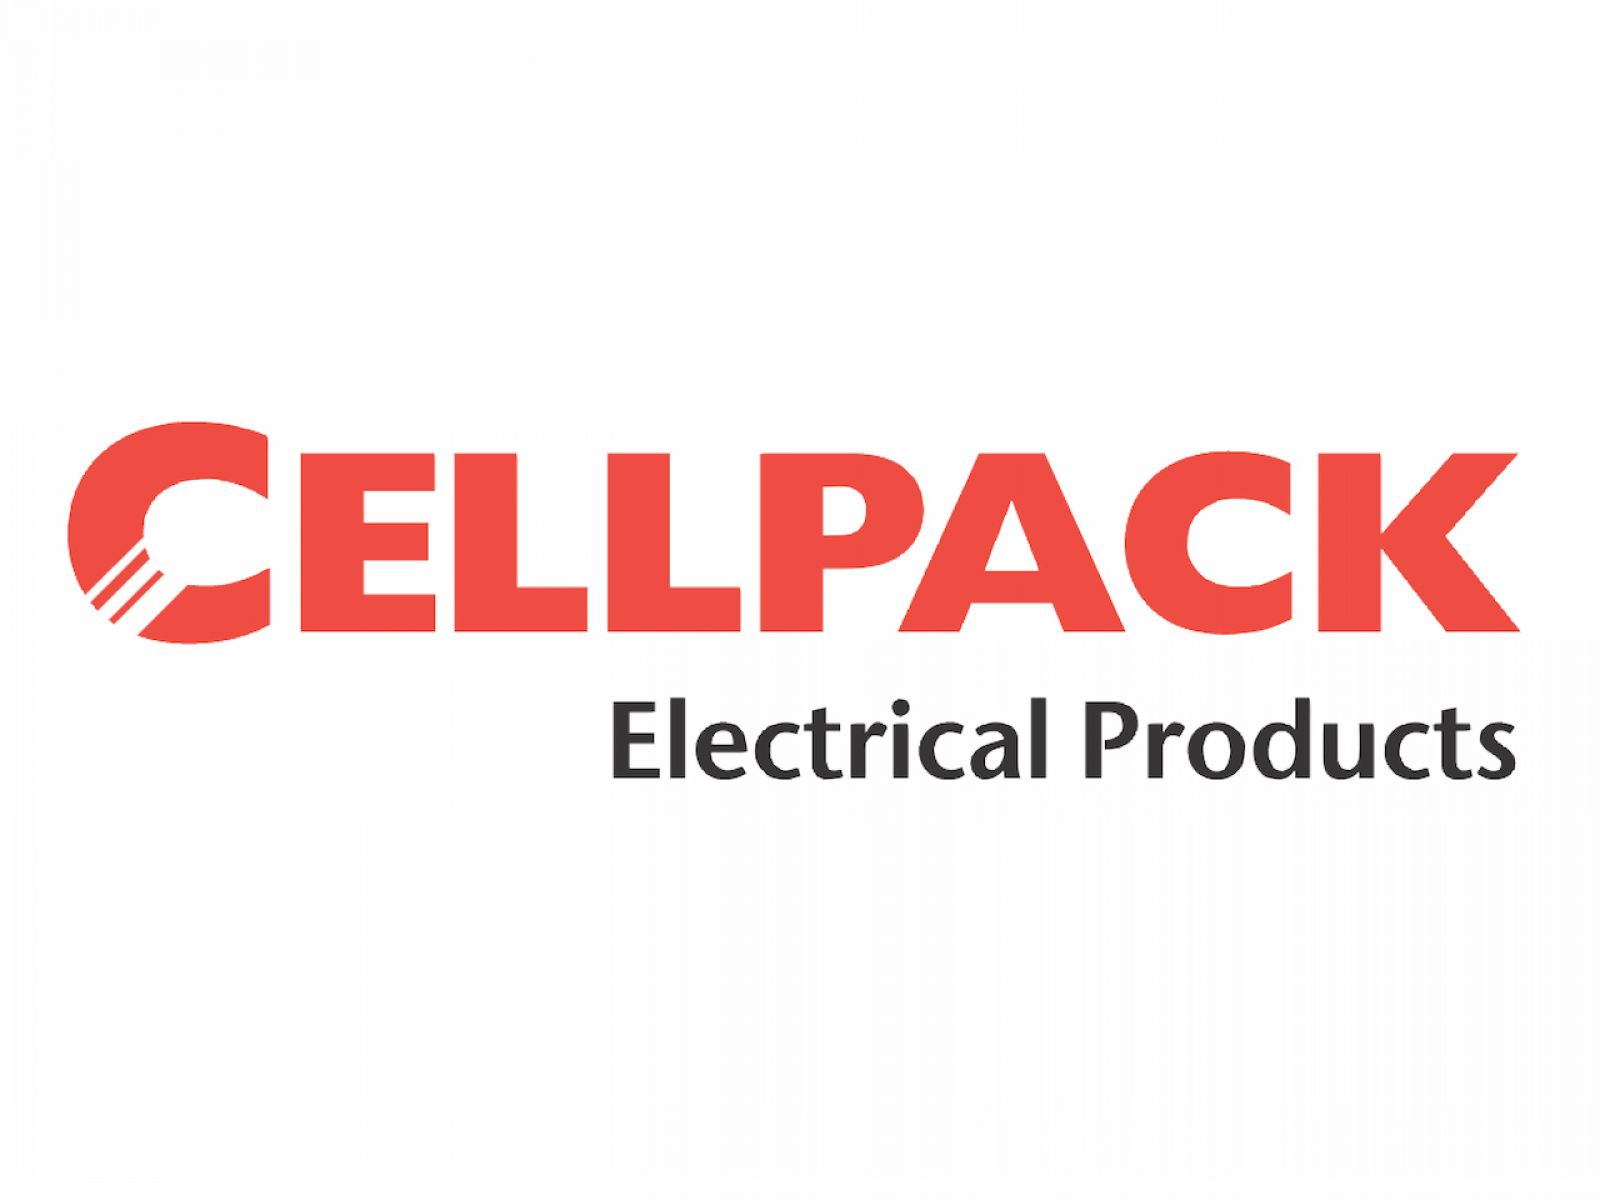 Cellpack AG